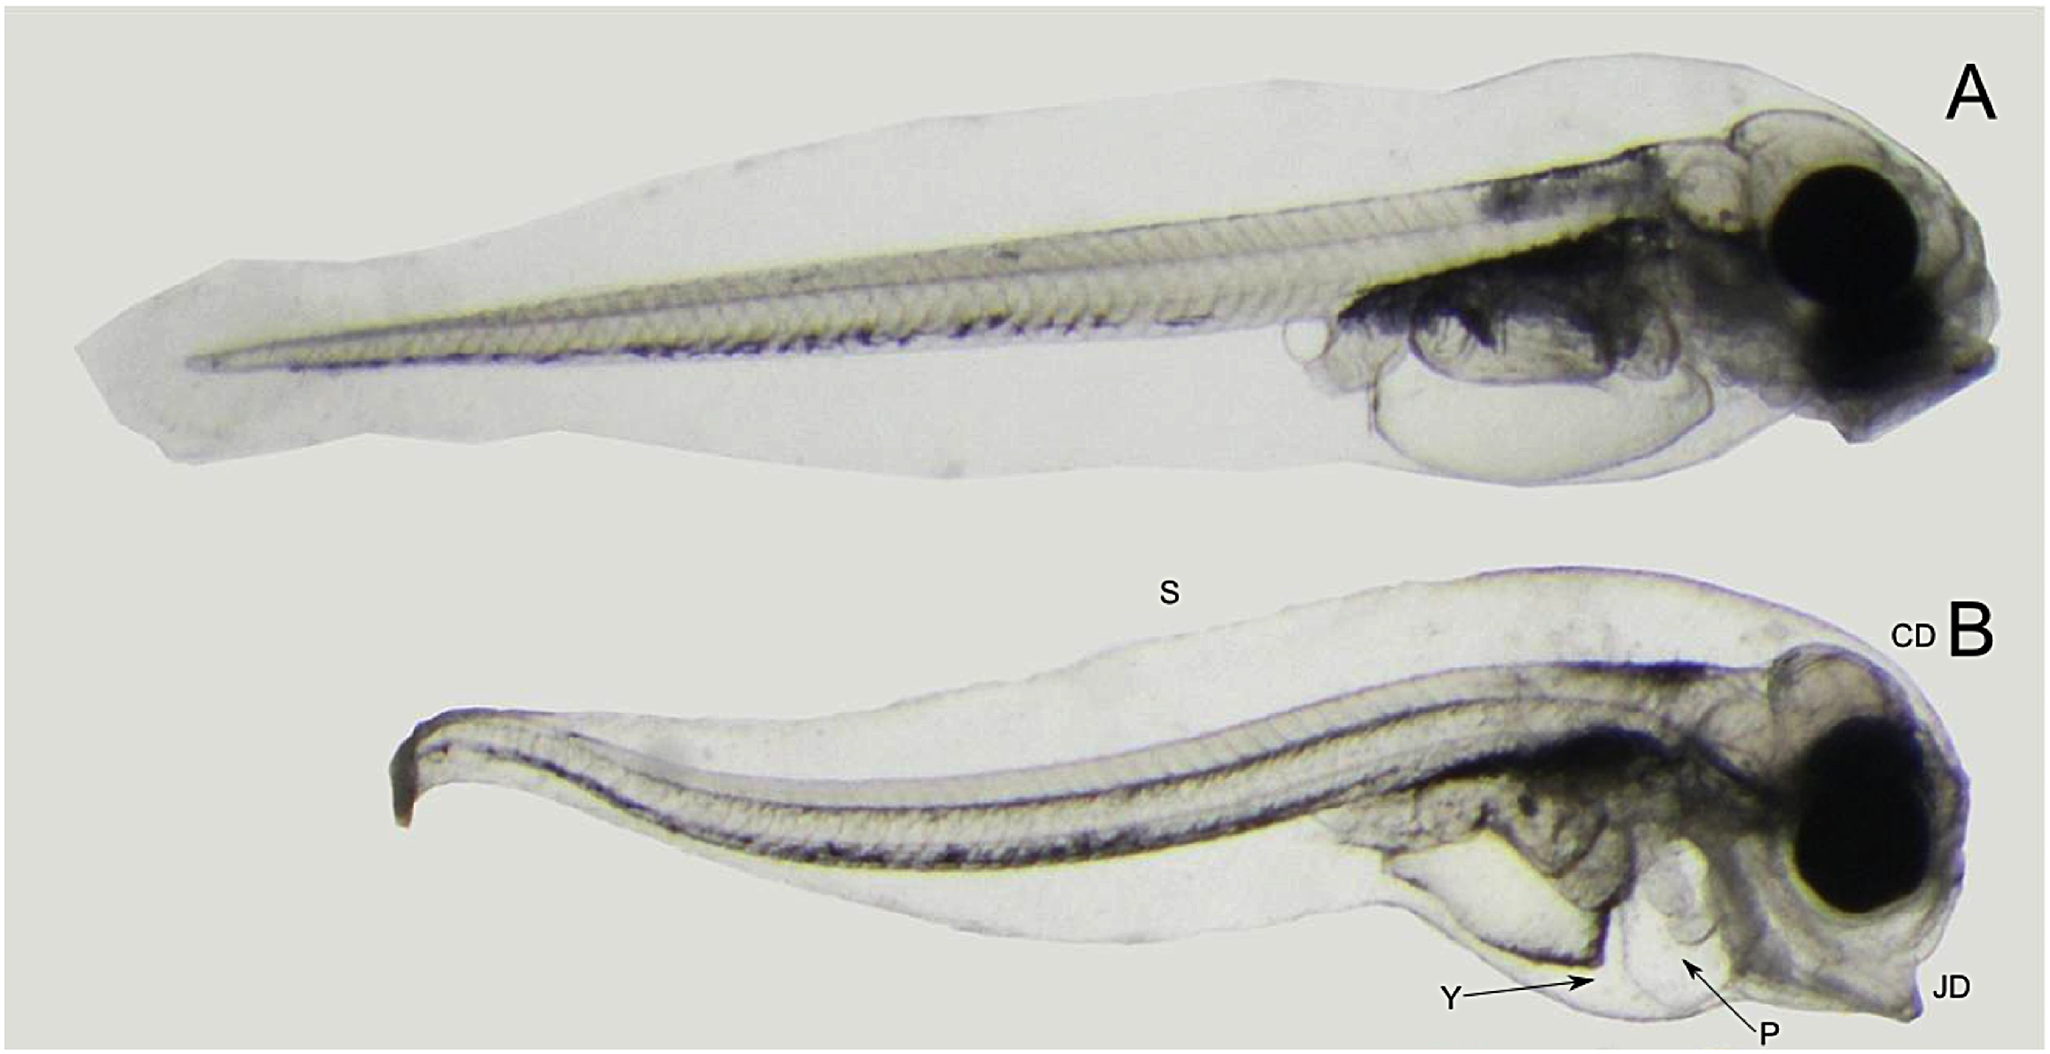 oil droplet pollution and marine fish embryos development